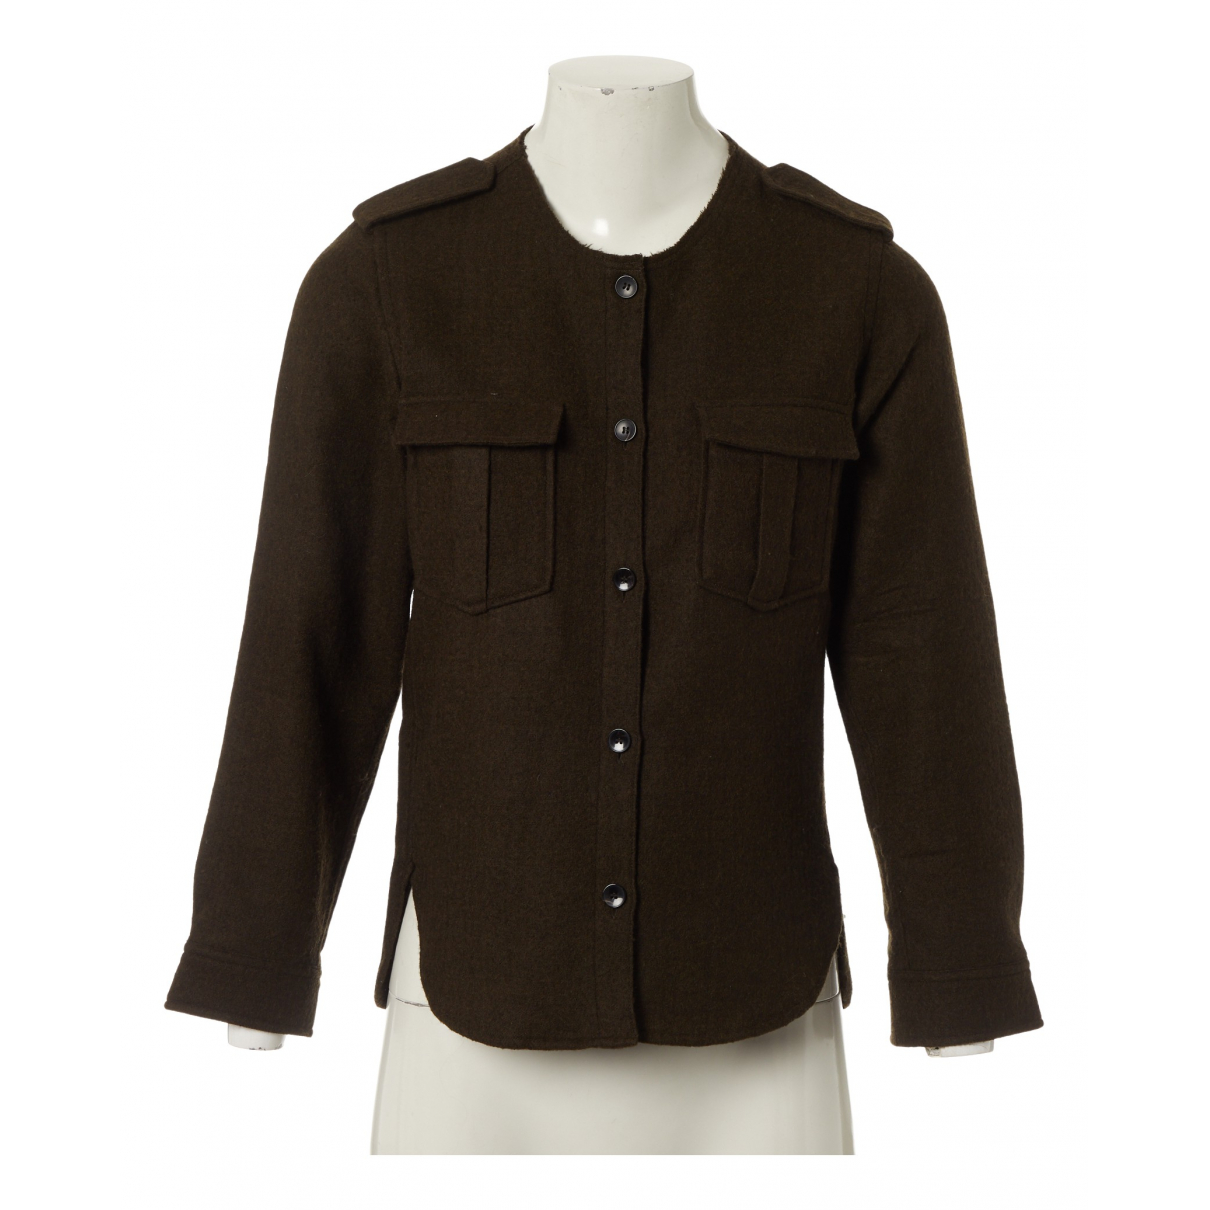 Isabel Marant \N Brown Wool jacket for Women 36 FR